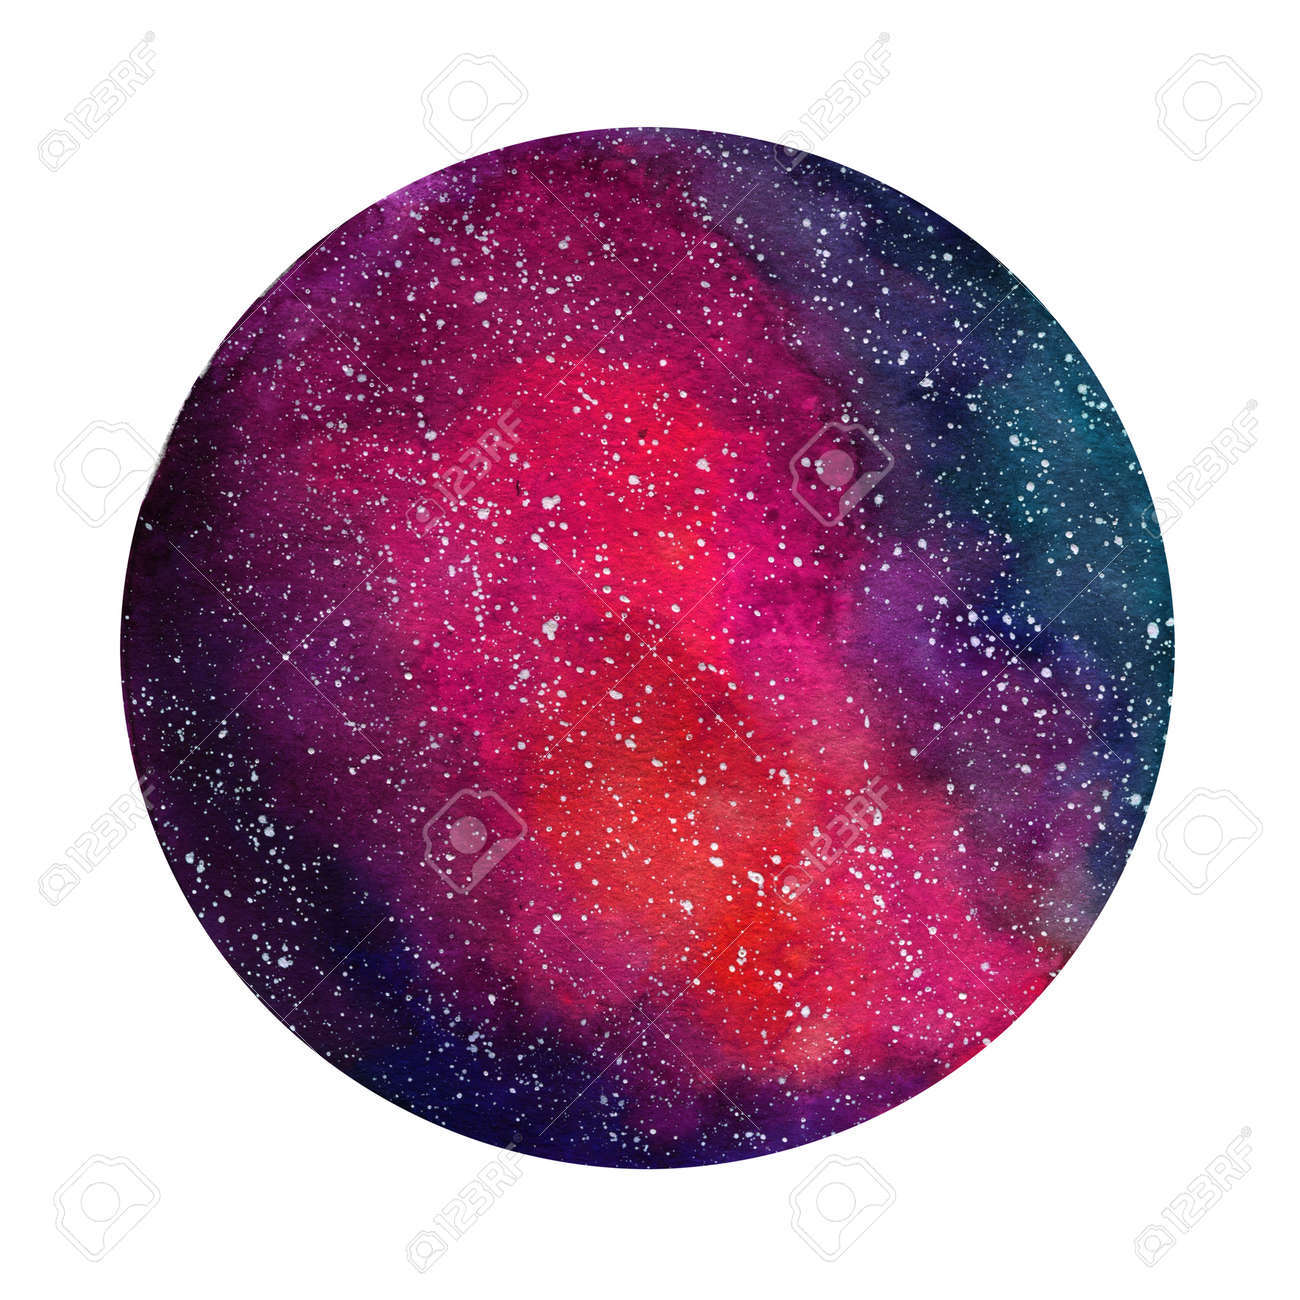 Space Cosmic background. Colorful watercolor galaxy or night sky with stars. Hand drawn cosmos illustration with blobs texture. Black, emerald, violet, green watercolour stains. - 75715287